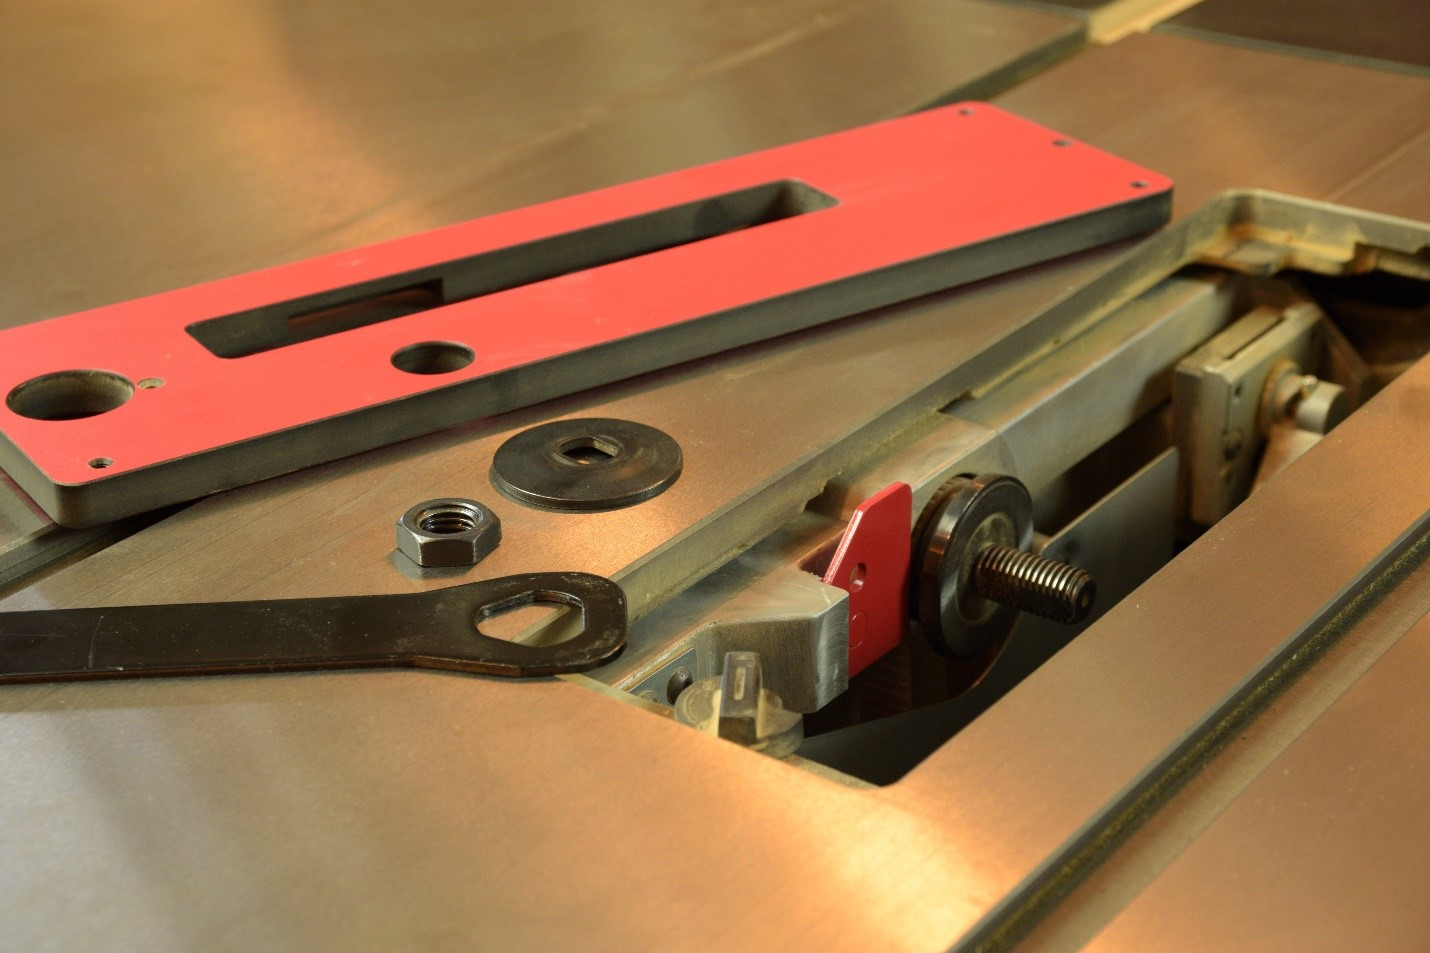 How to install the blade into table saw